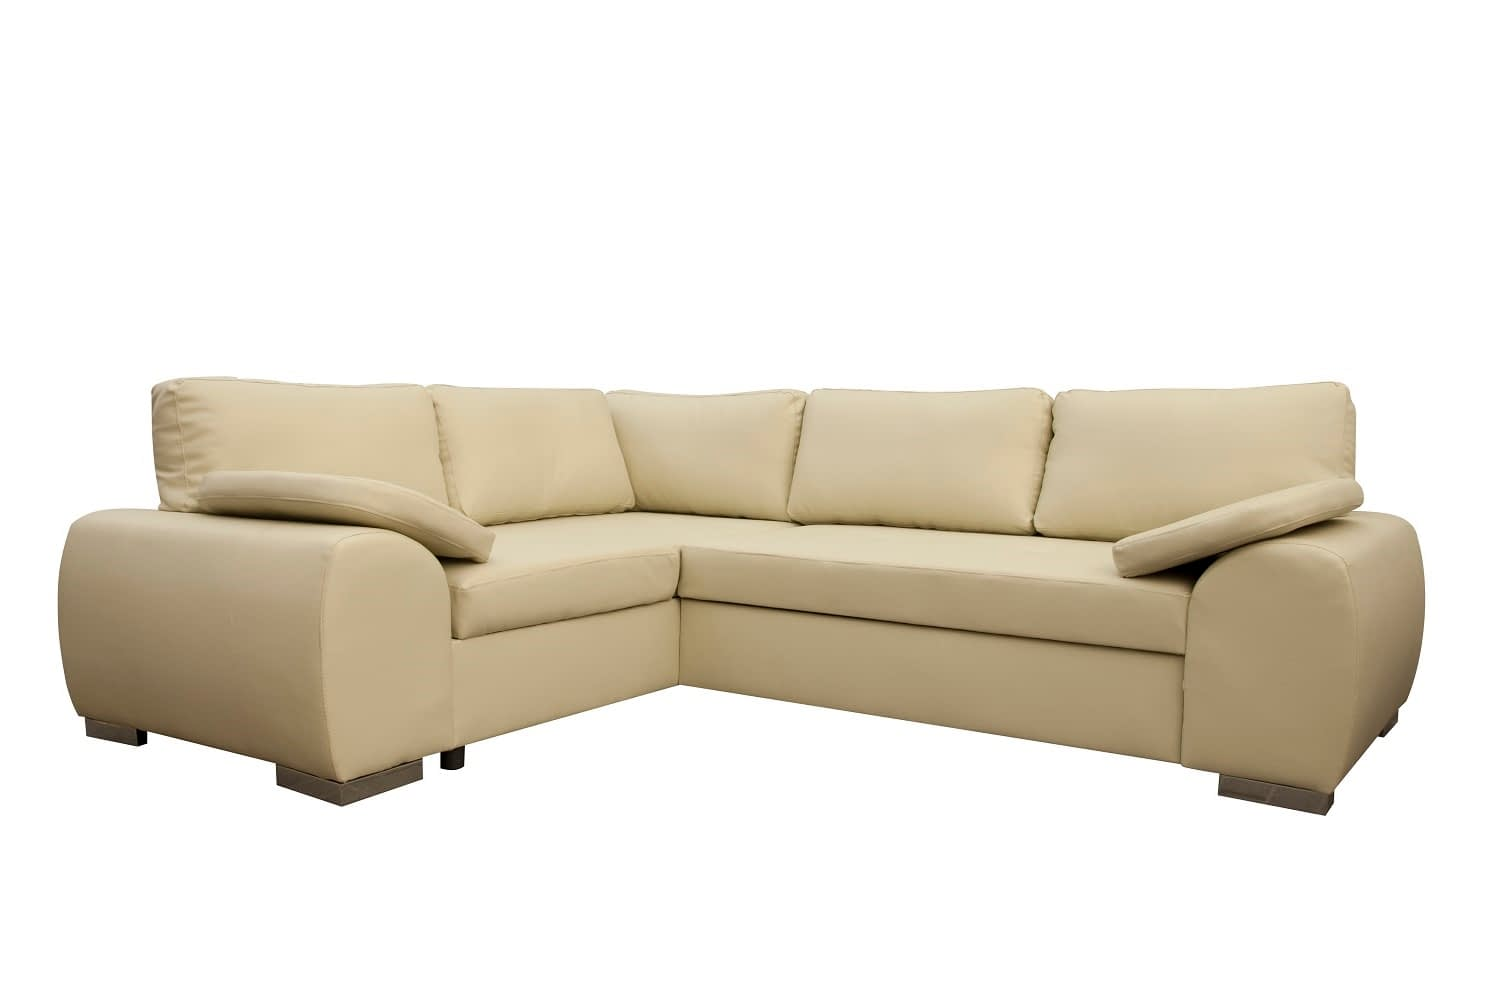 Enzo Sofa Bed | Easy Pay Shop